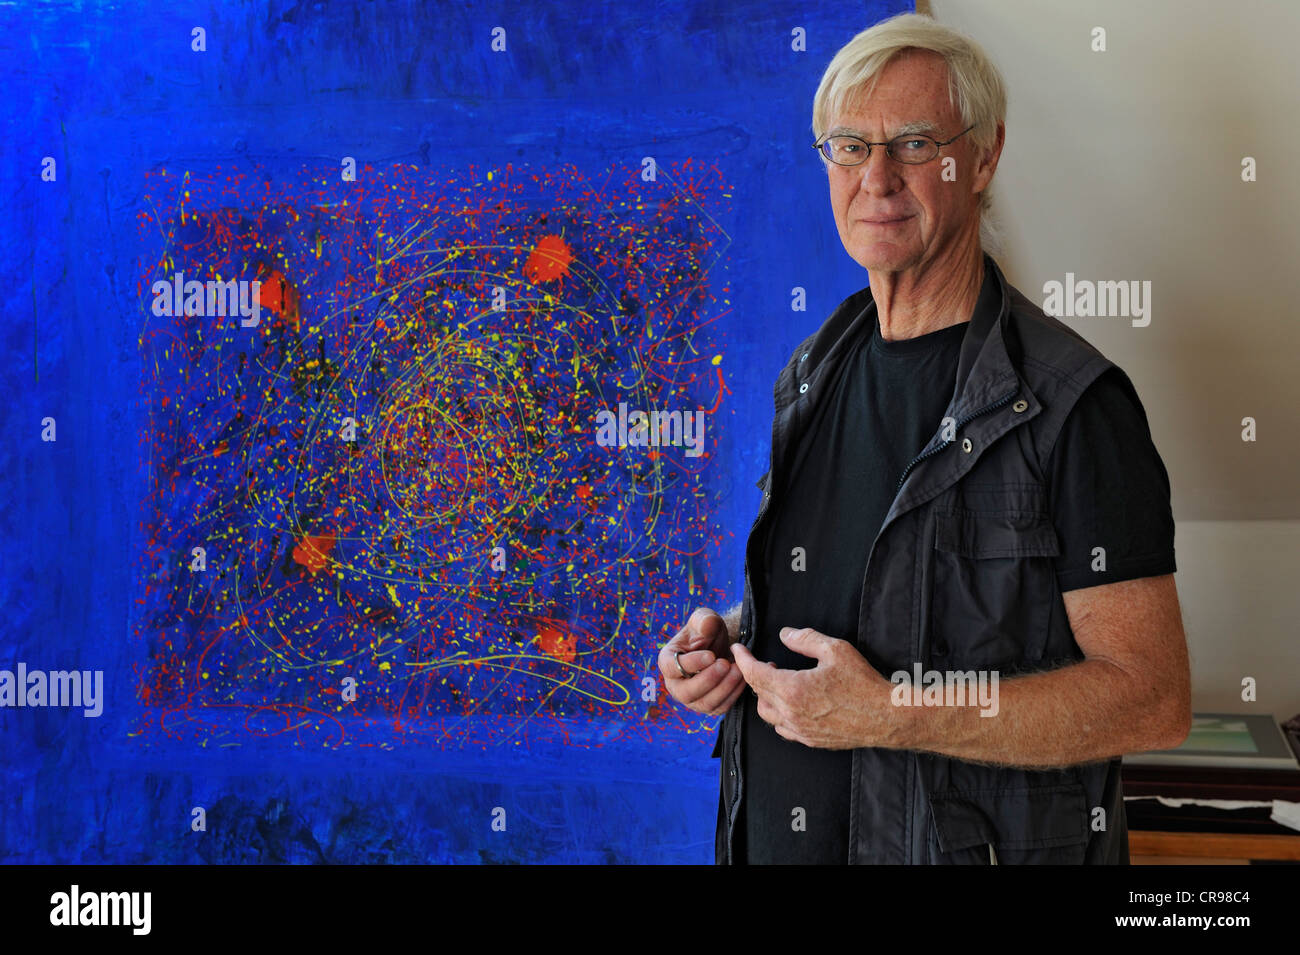 Retiree in front of his painting, Bavaria, Germany, Europe - Stock Image